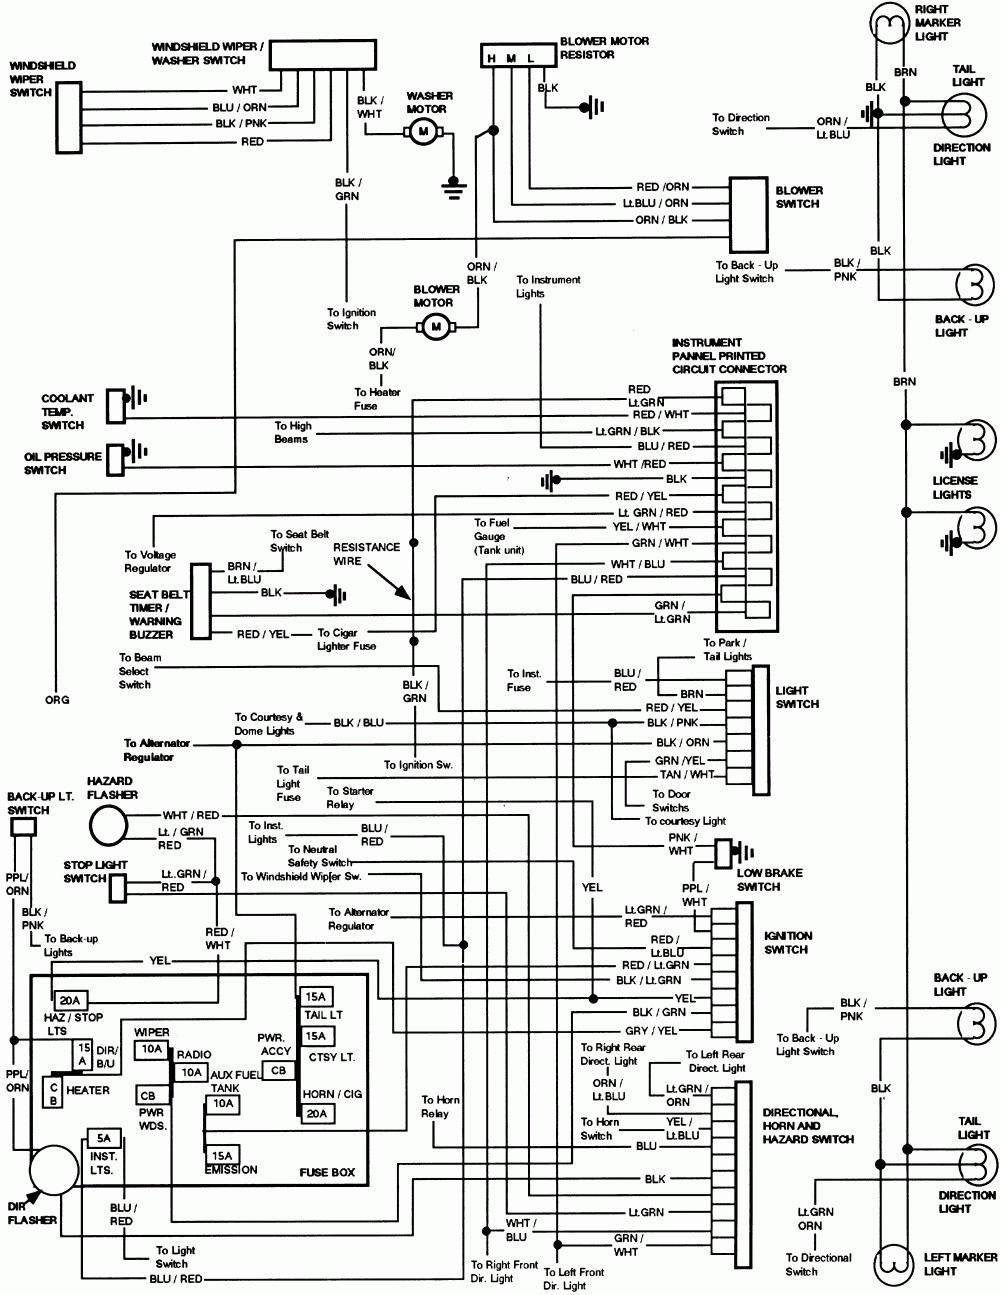 hight resolution of 90 ford ranger wiring diagram wiring diagram article review1990 ford ranger wiring harness diagram schematic wiring